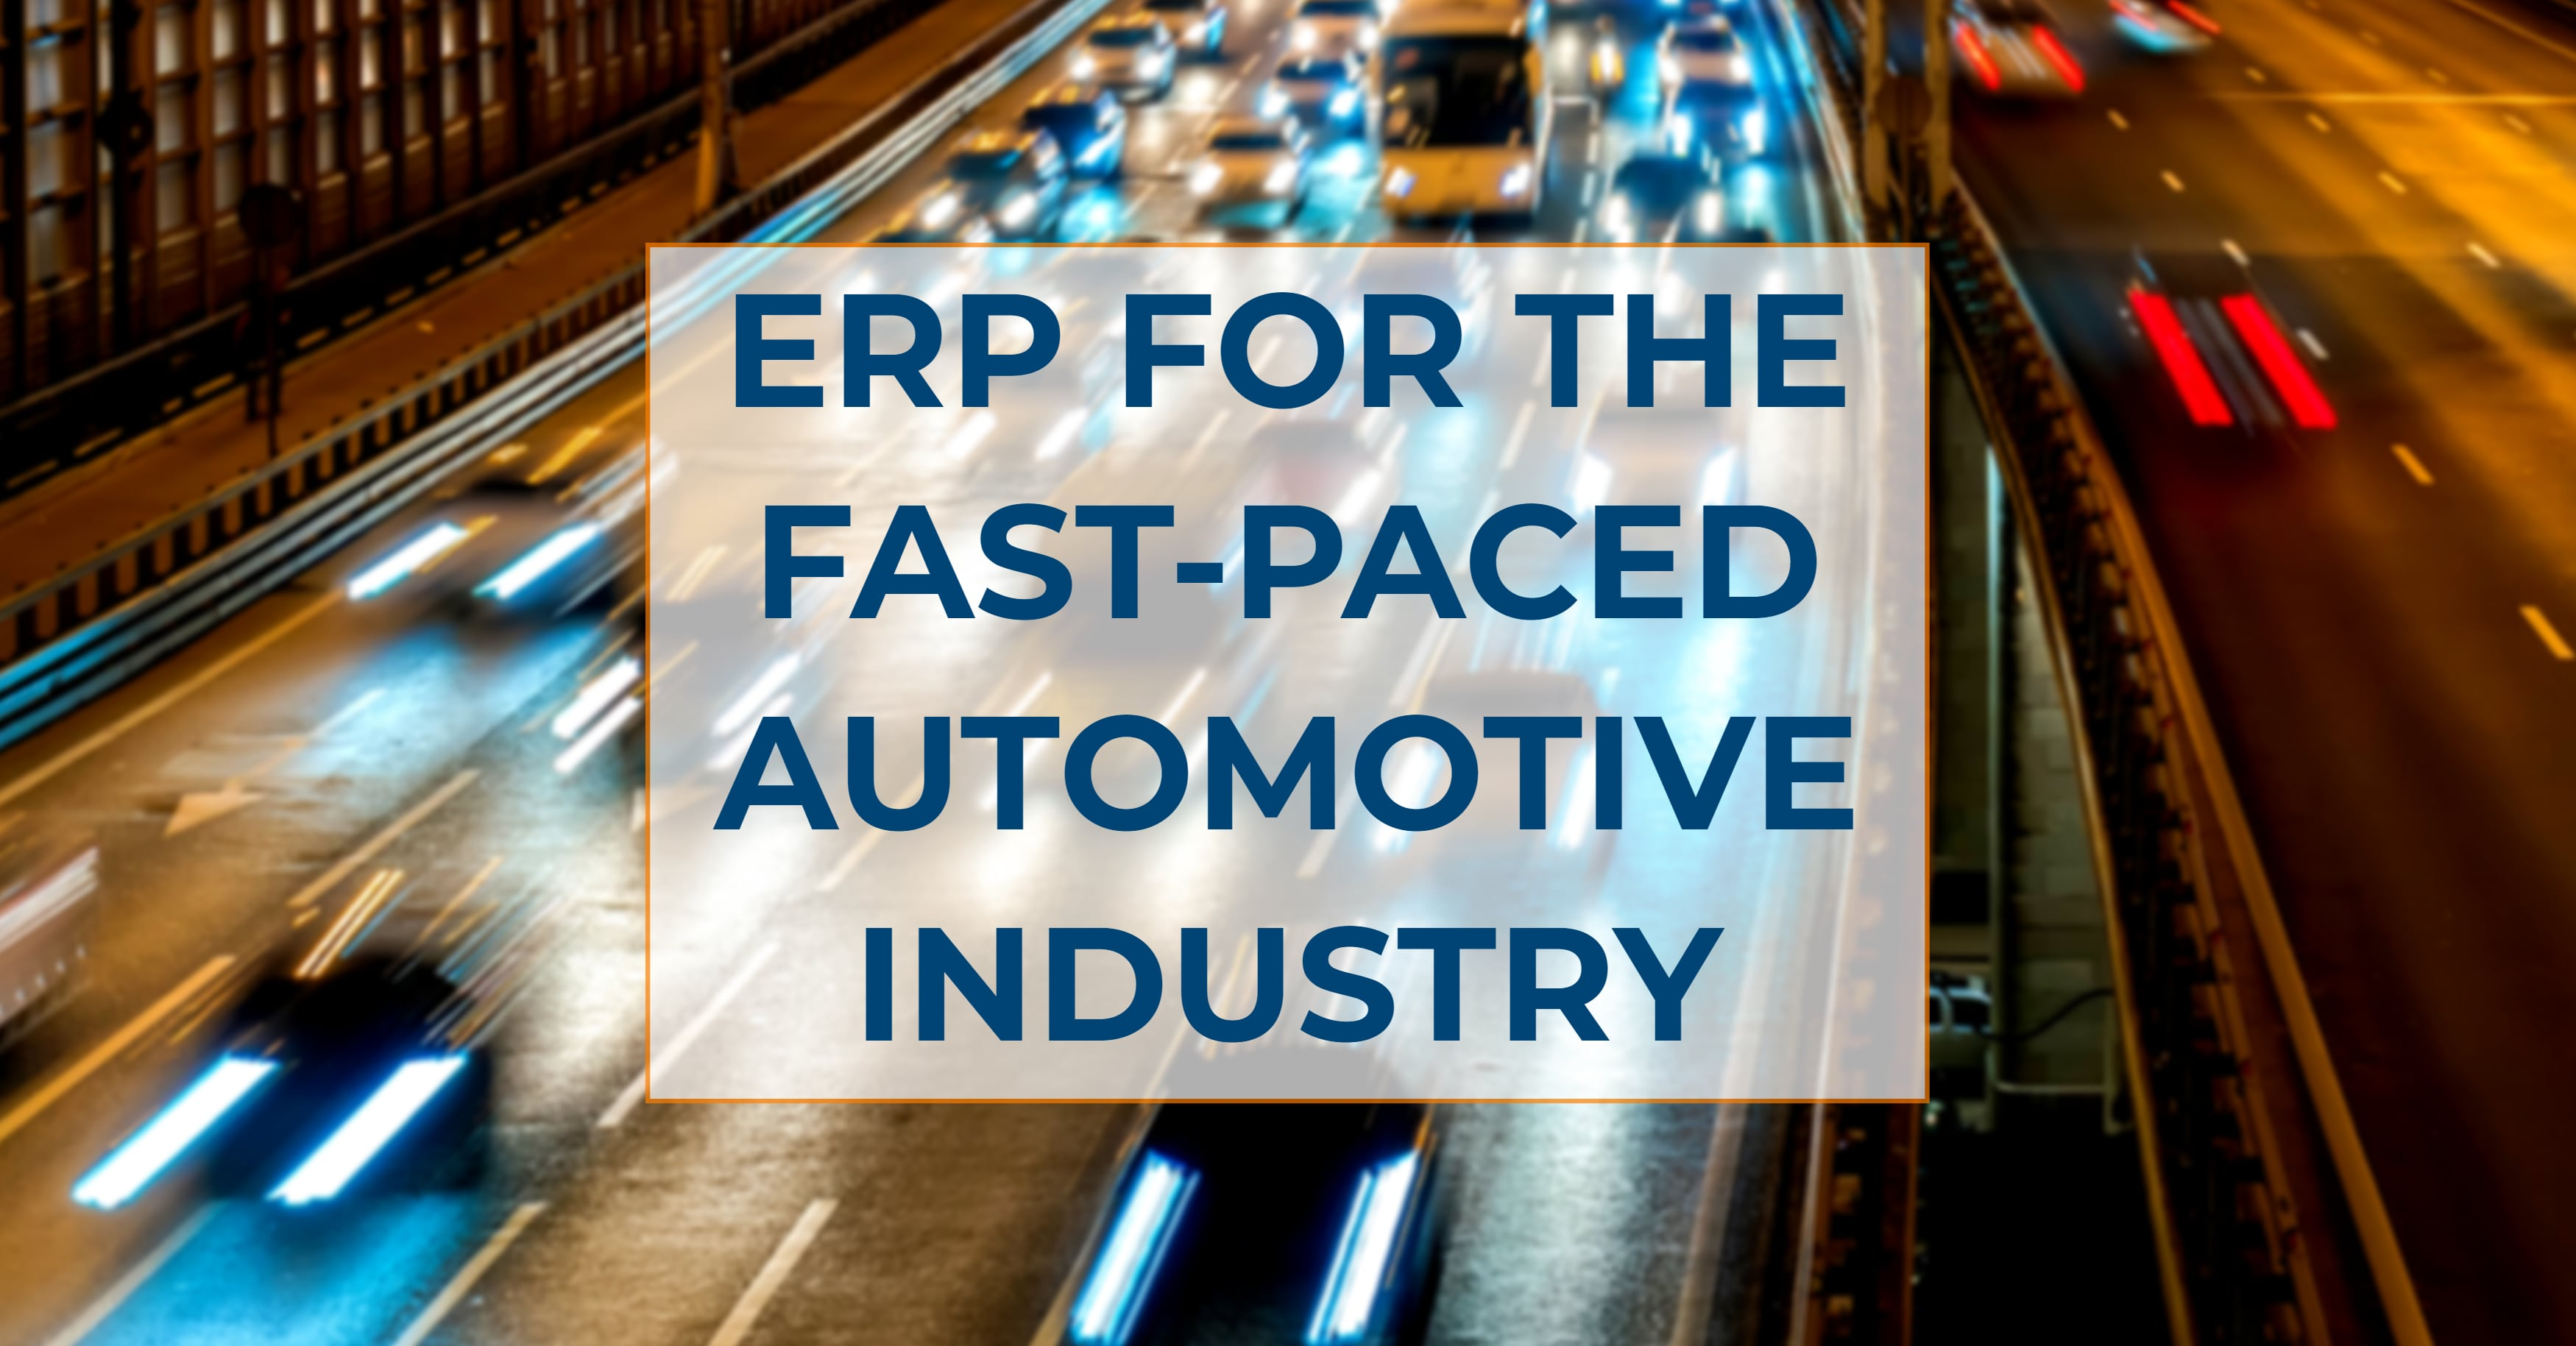 How to Use ERP for the Fast-Paced Automotive Industry